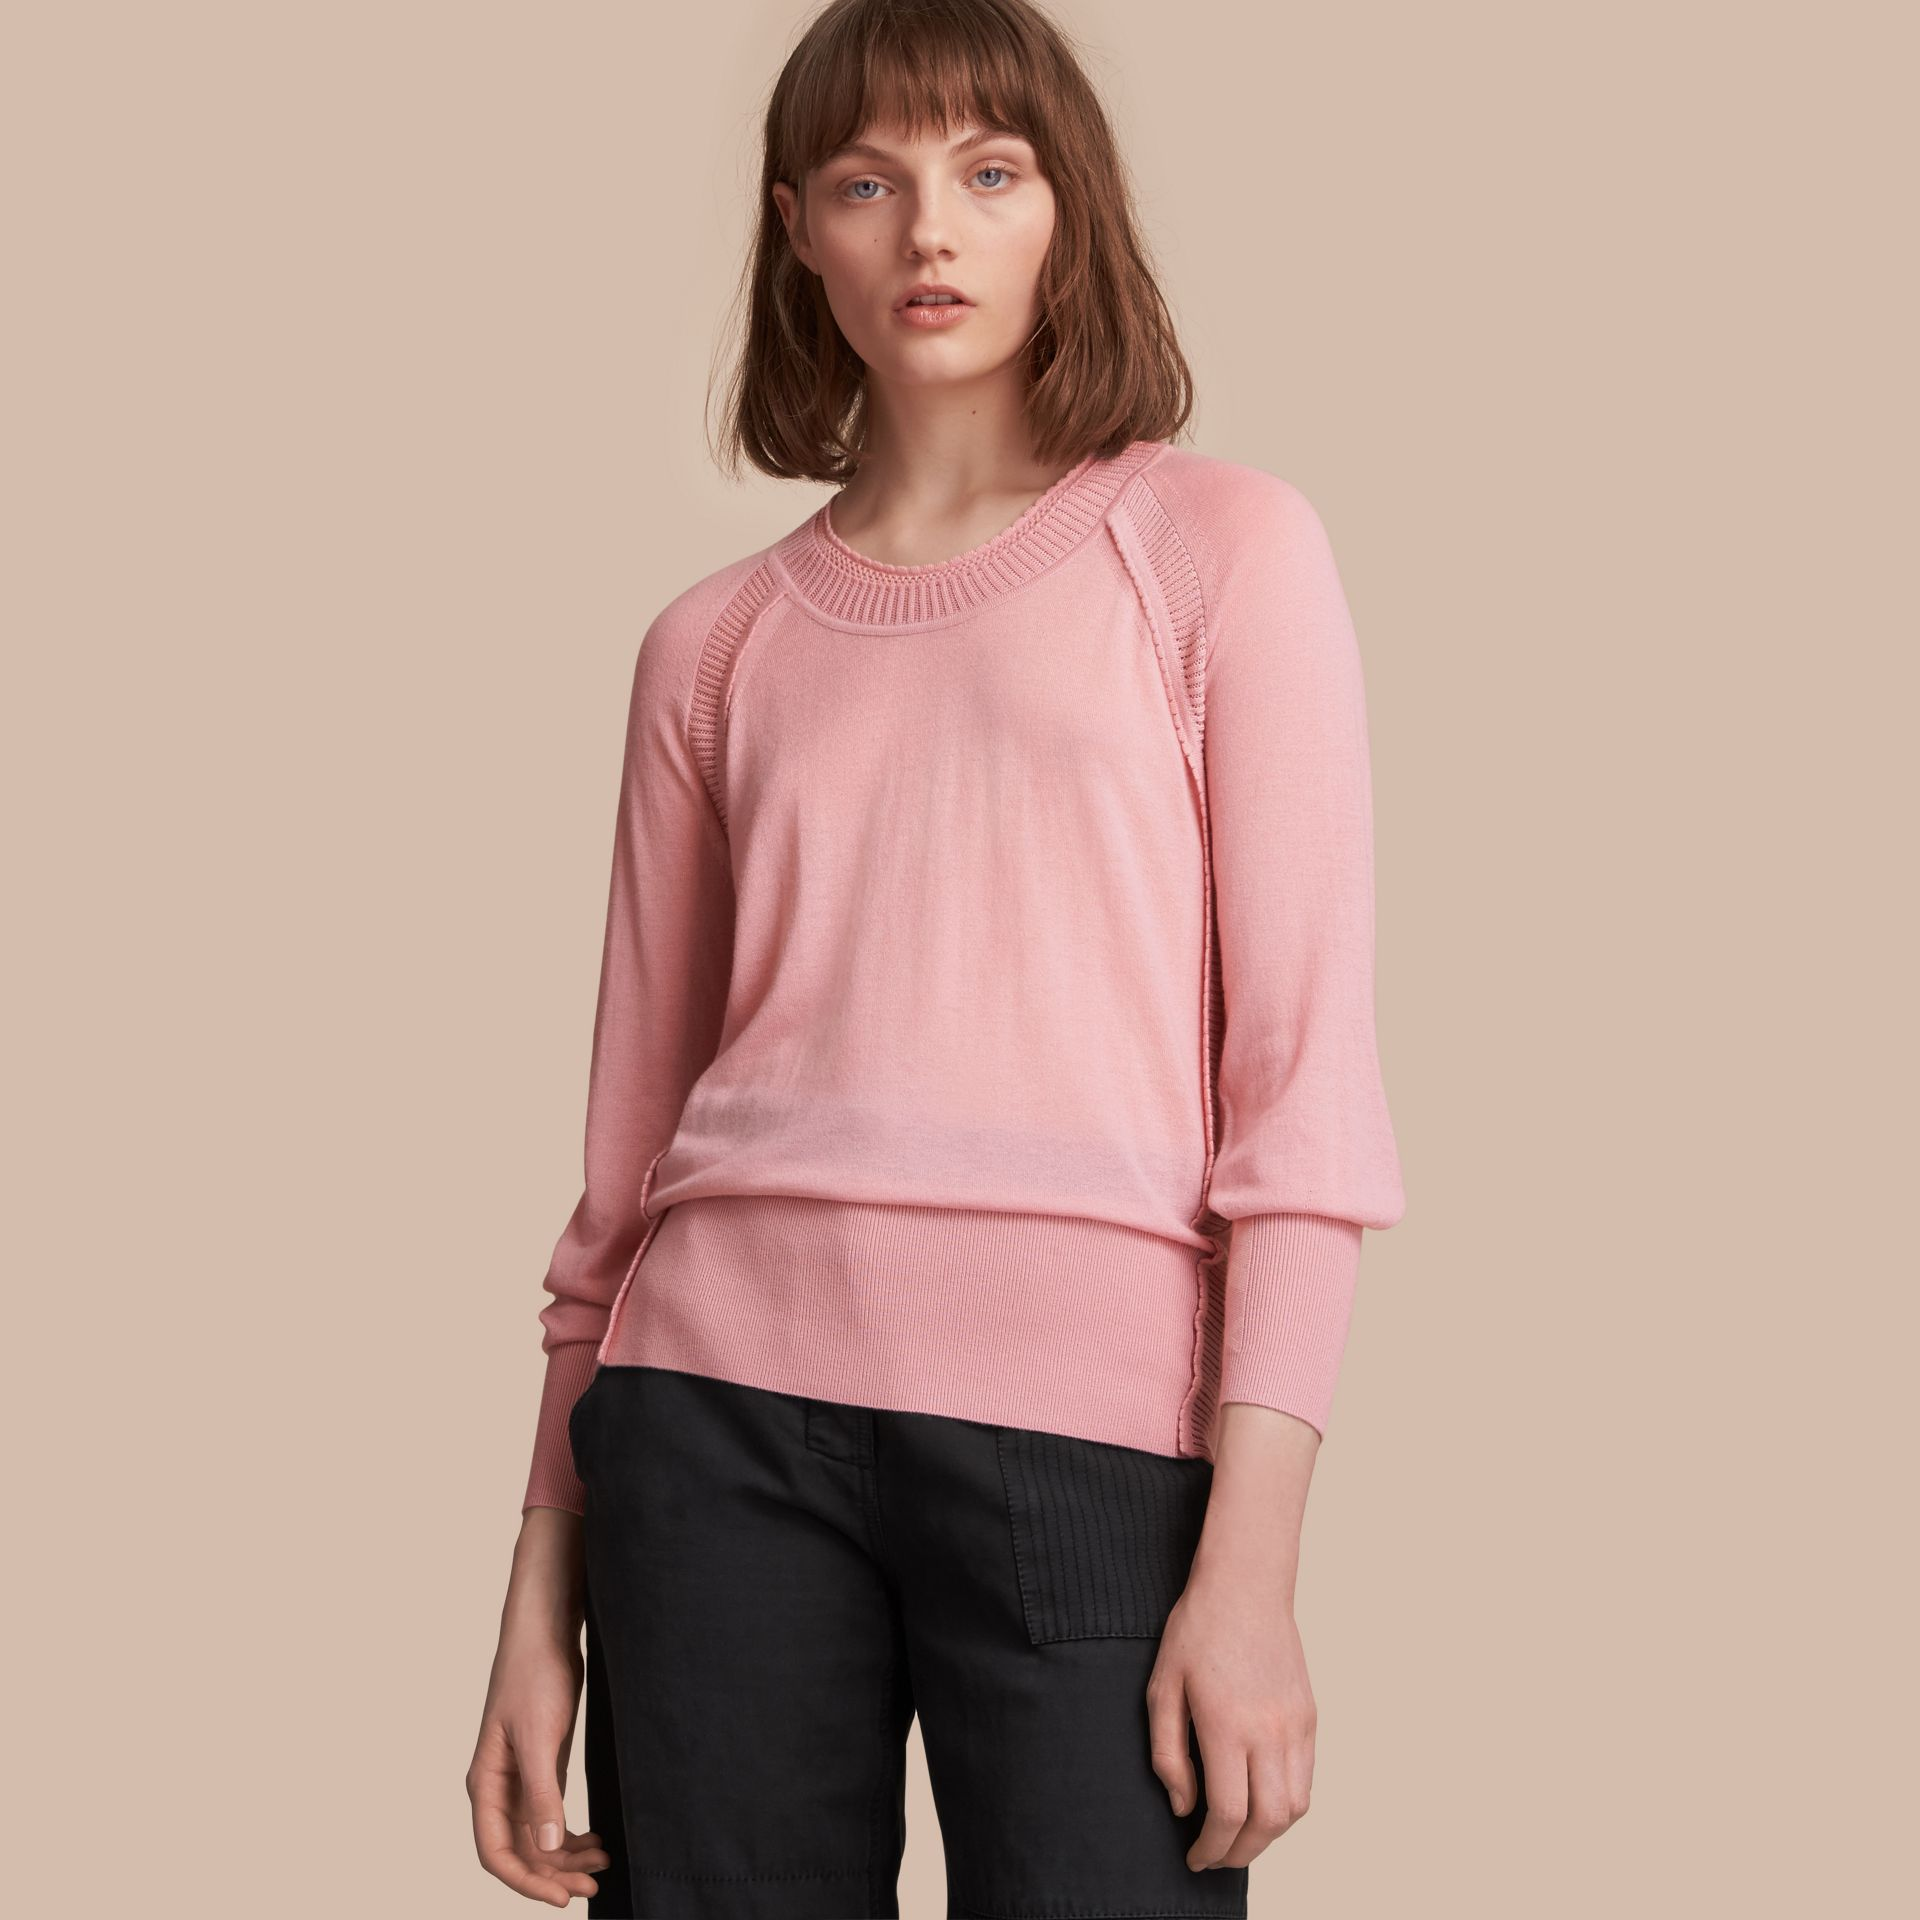 Open-knit Detail Cashmere Crew Neck Sweater in Apricot Pink - Women | Burberry Singapore - gallery image 1